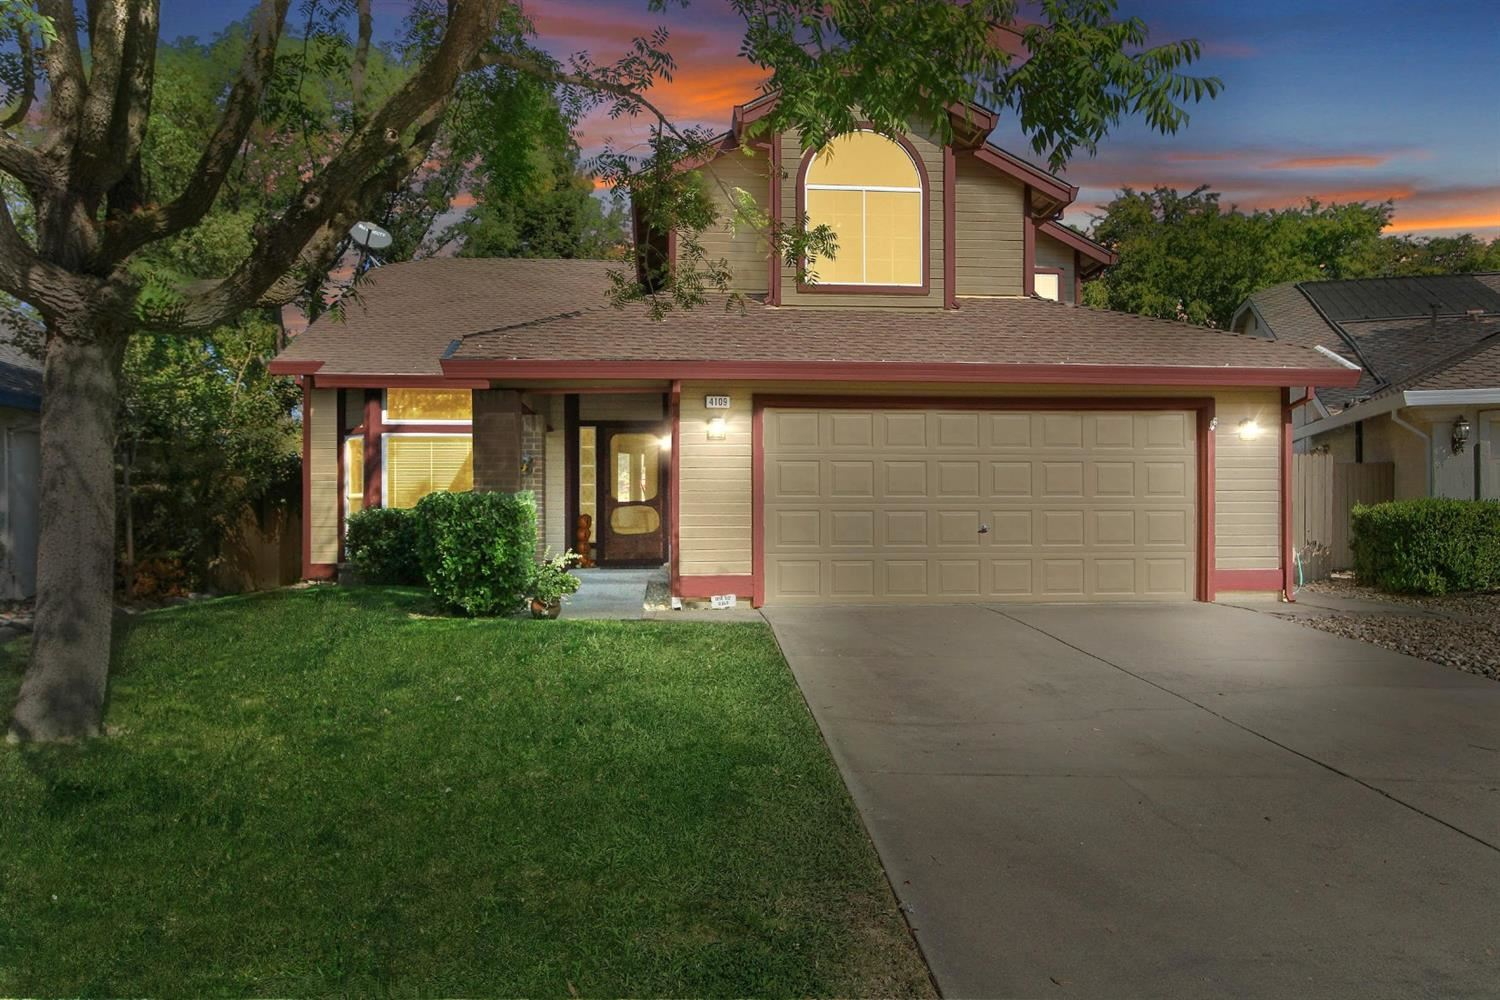 Photo of 4109 Copper Hill Court, Antelope, CA 95843 (MLS # 20063272)